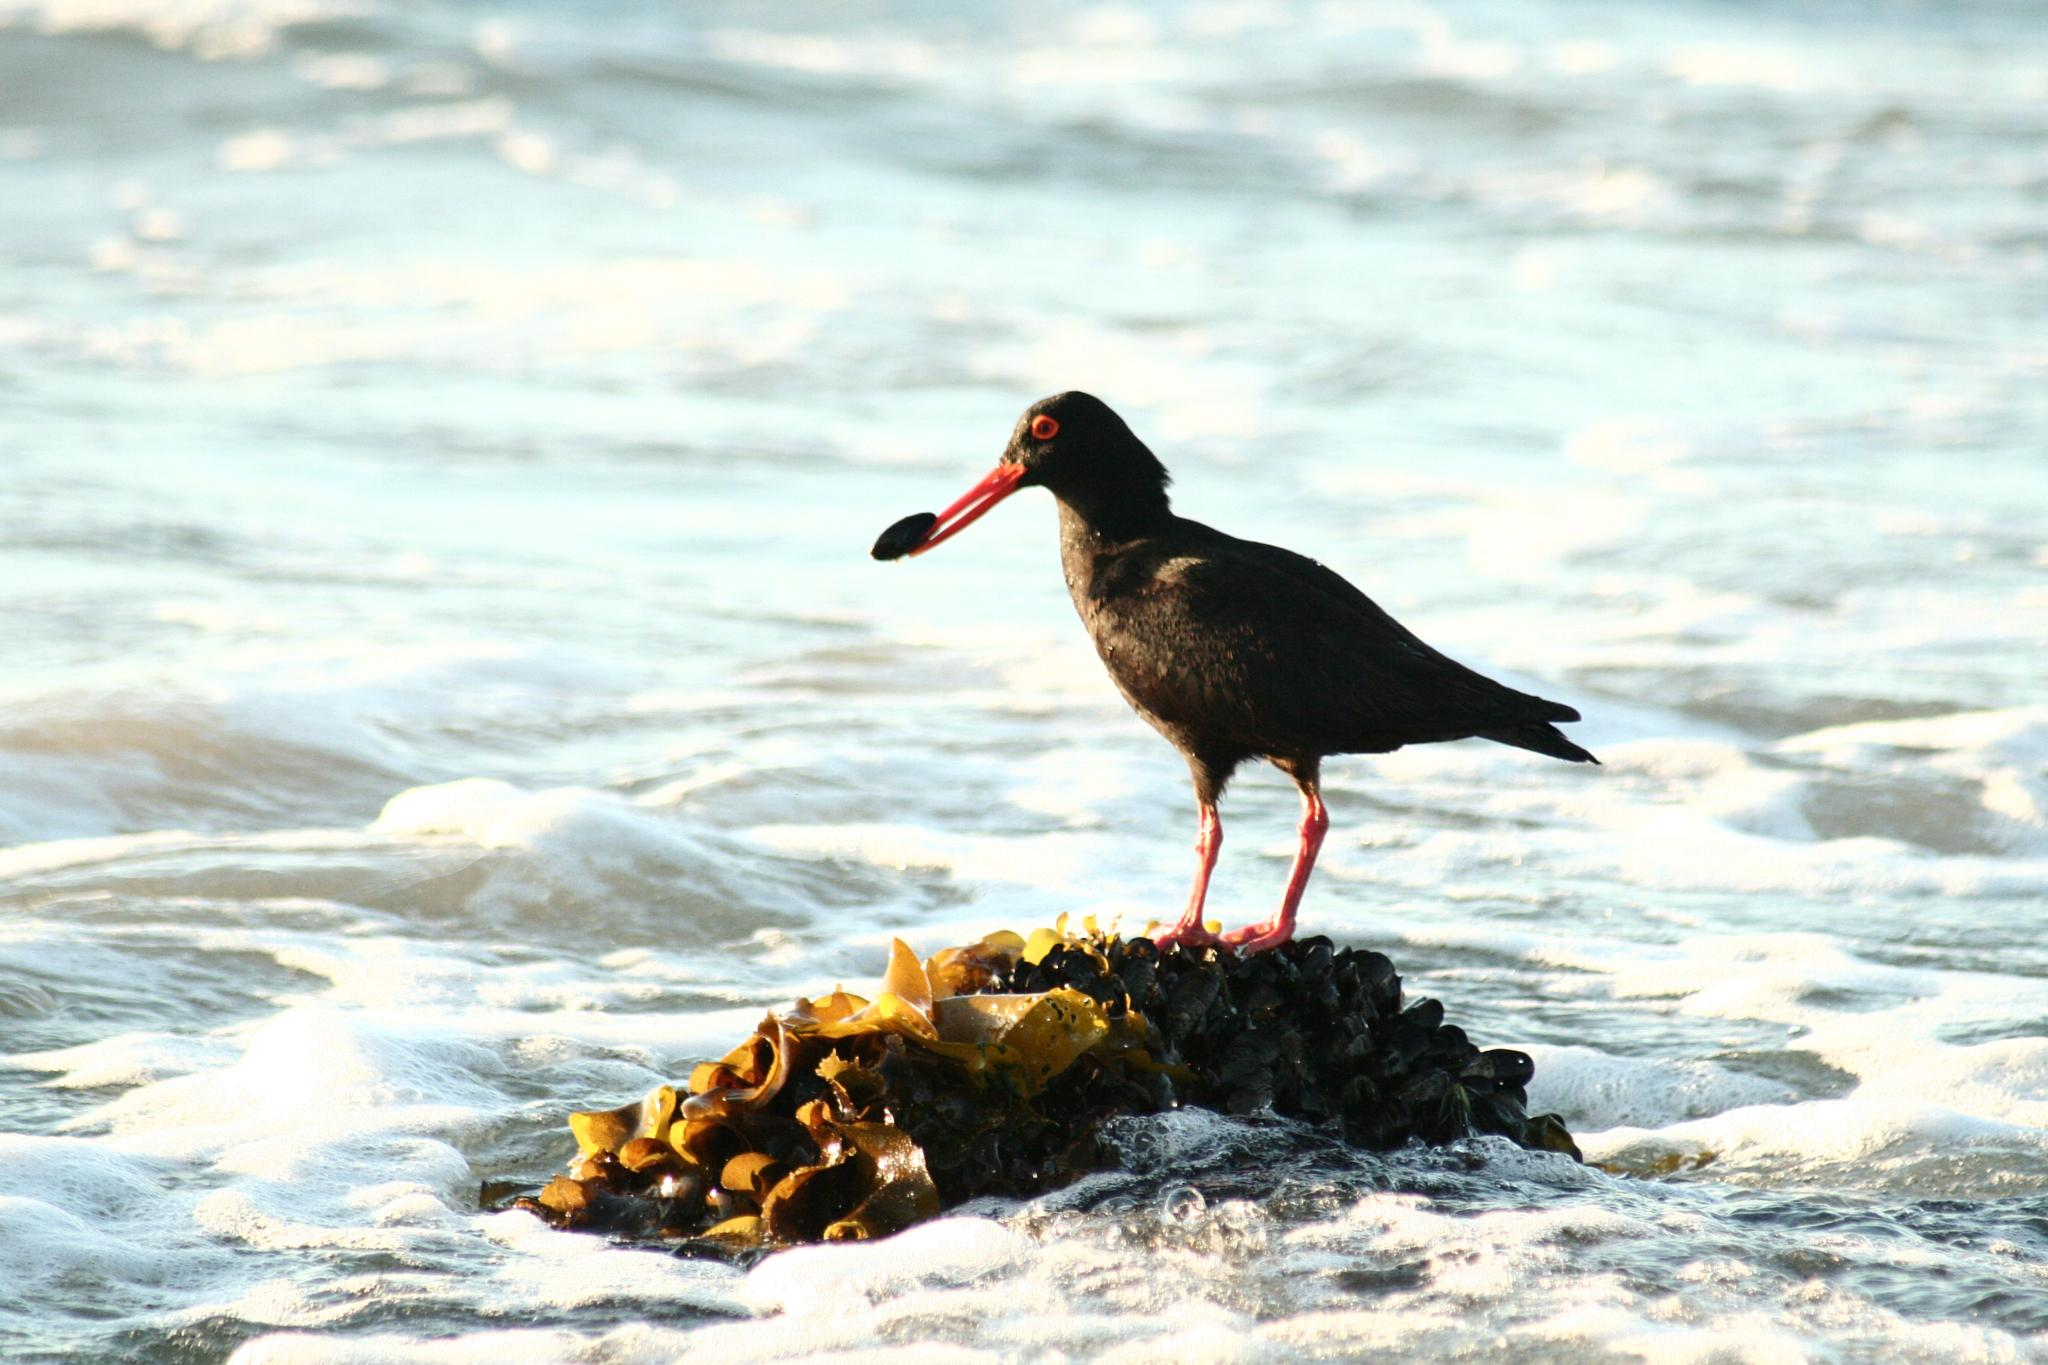 The African black Oystercatcher by Judithstopforth